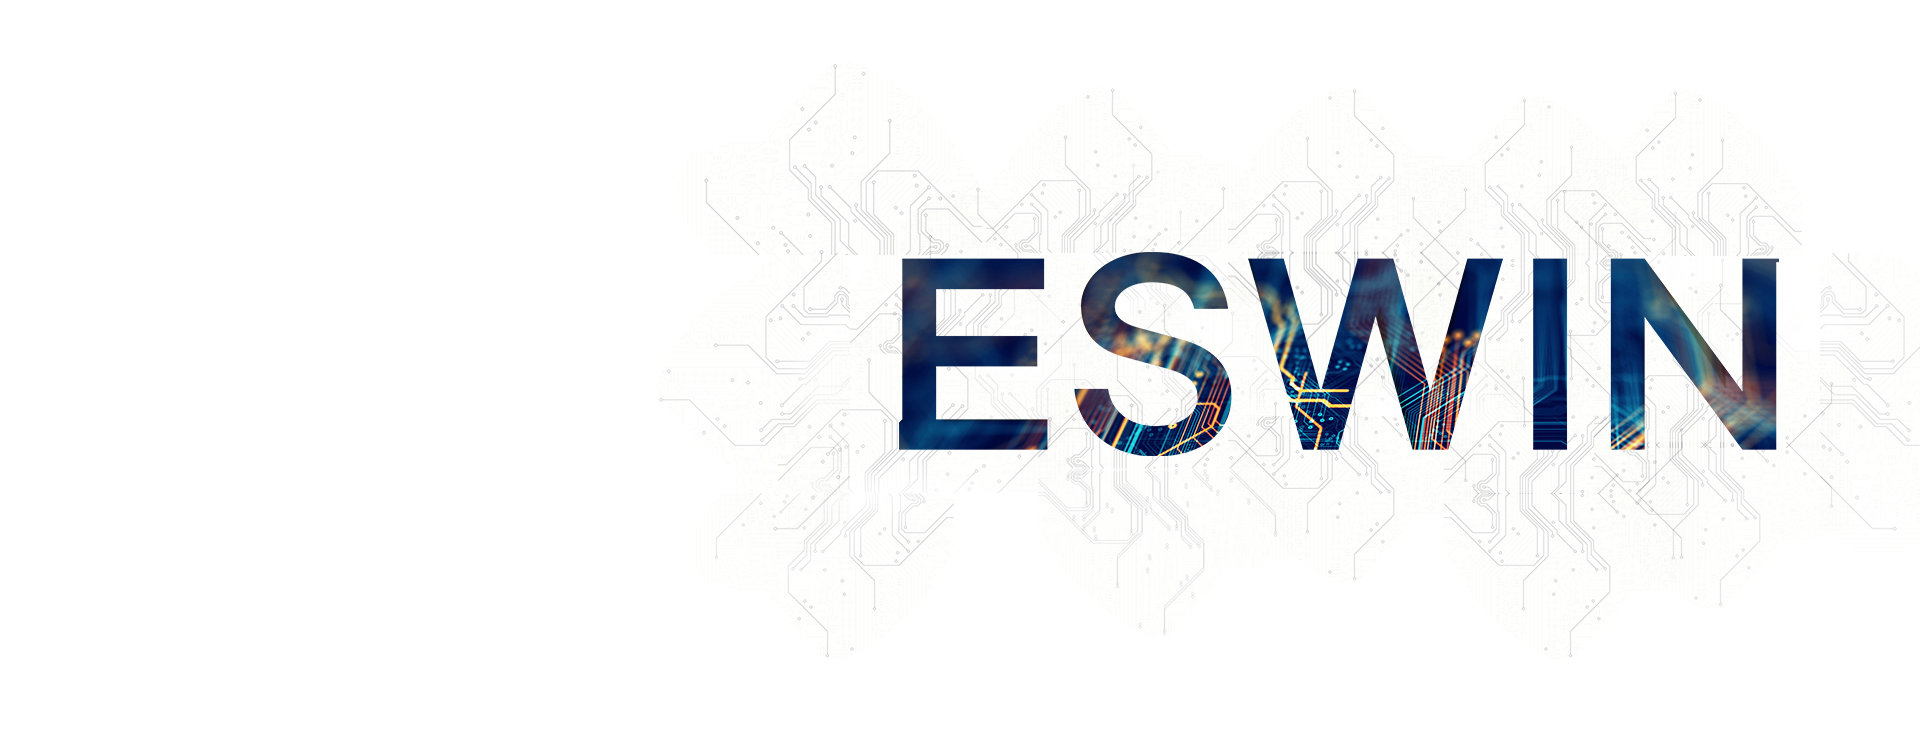 About Eswin